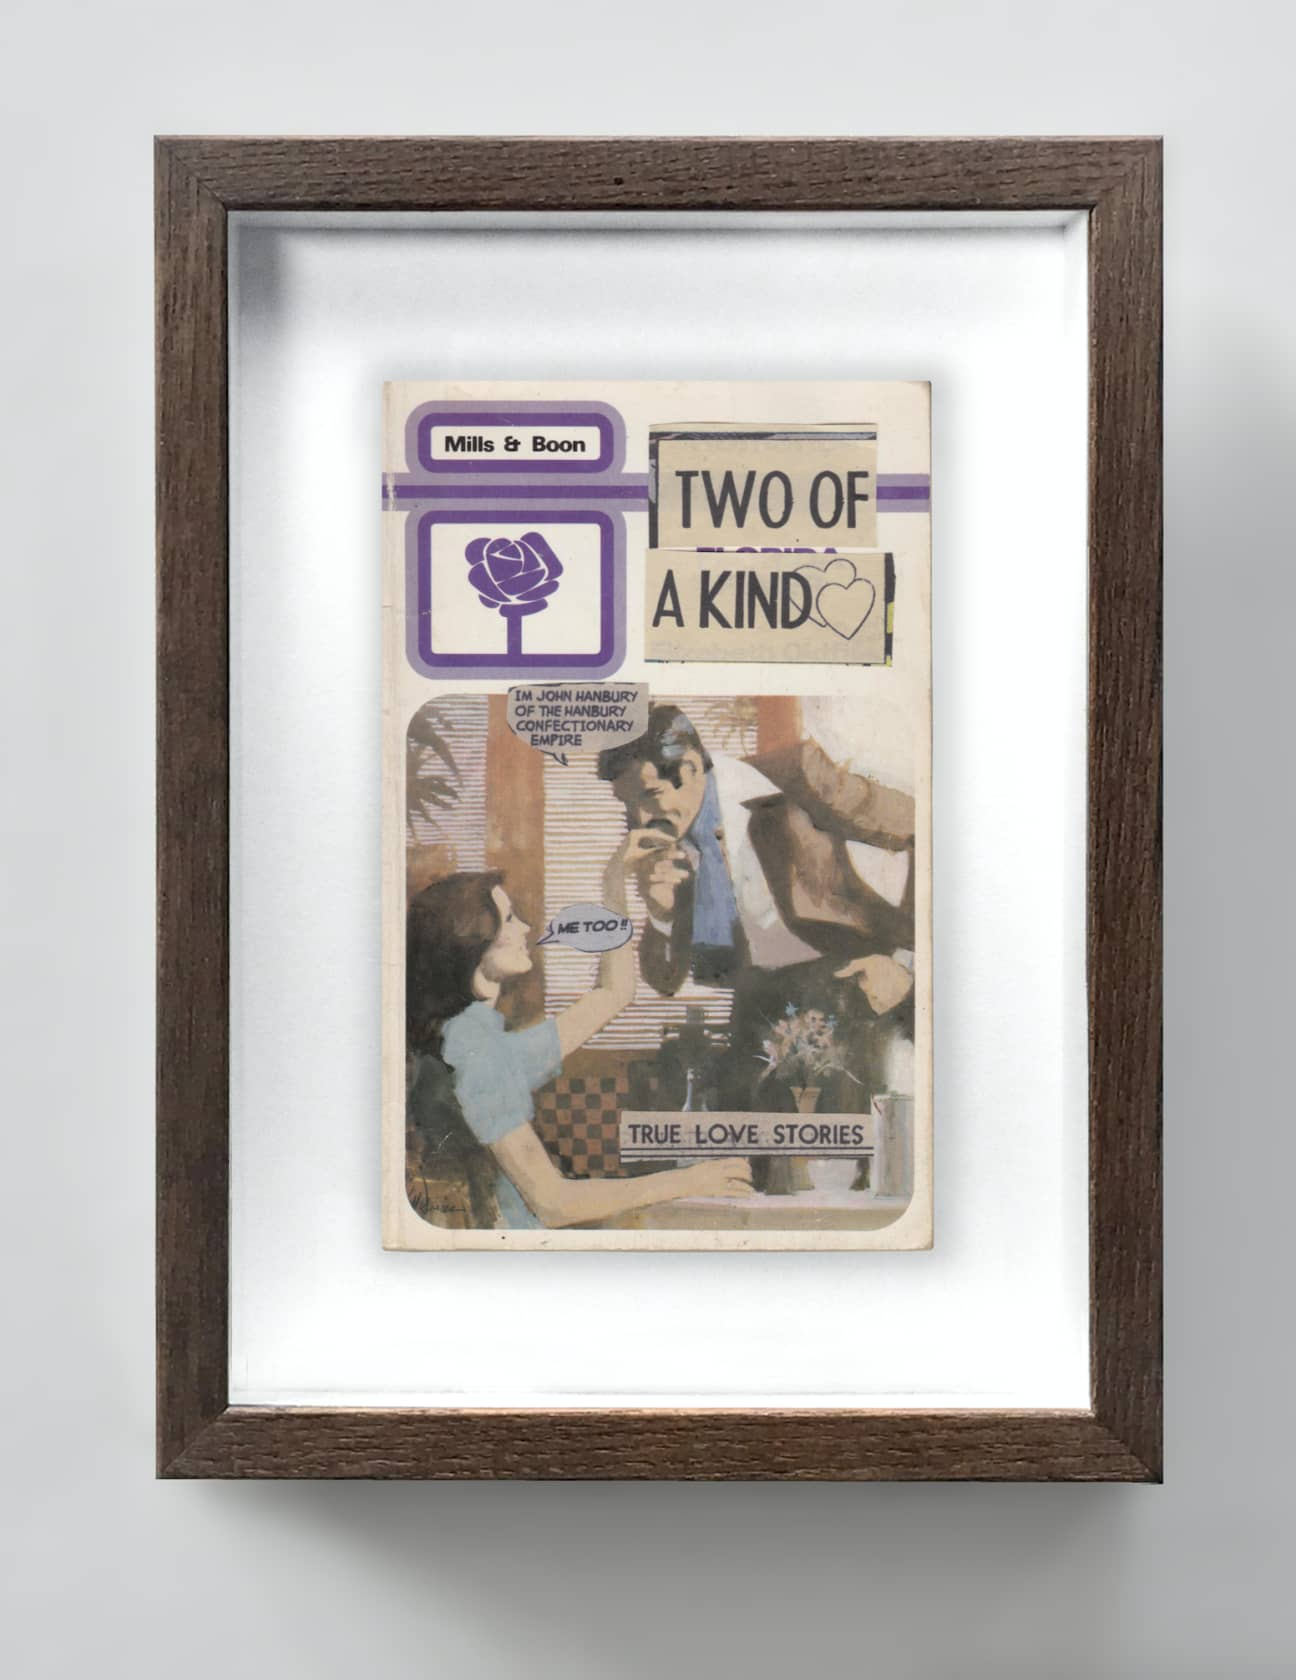 the connor brothers Two Of A Kind Collage on vintage paperback book